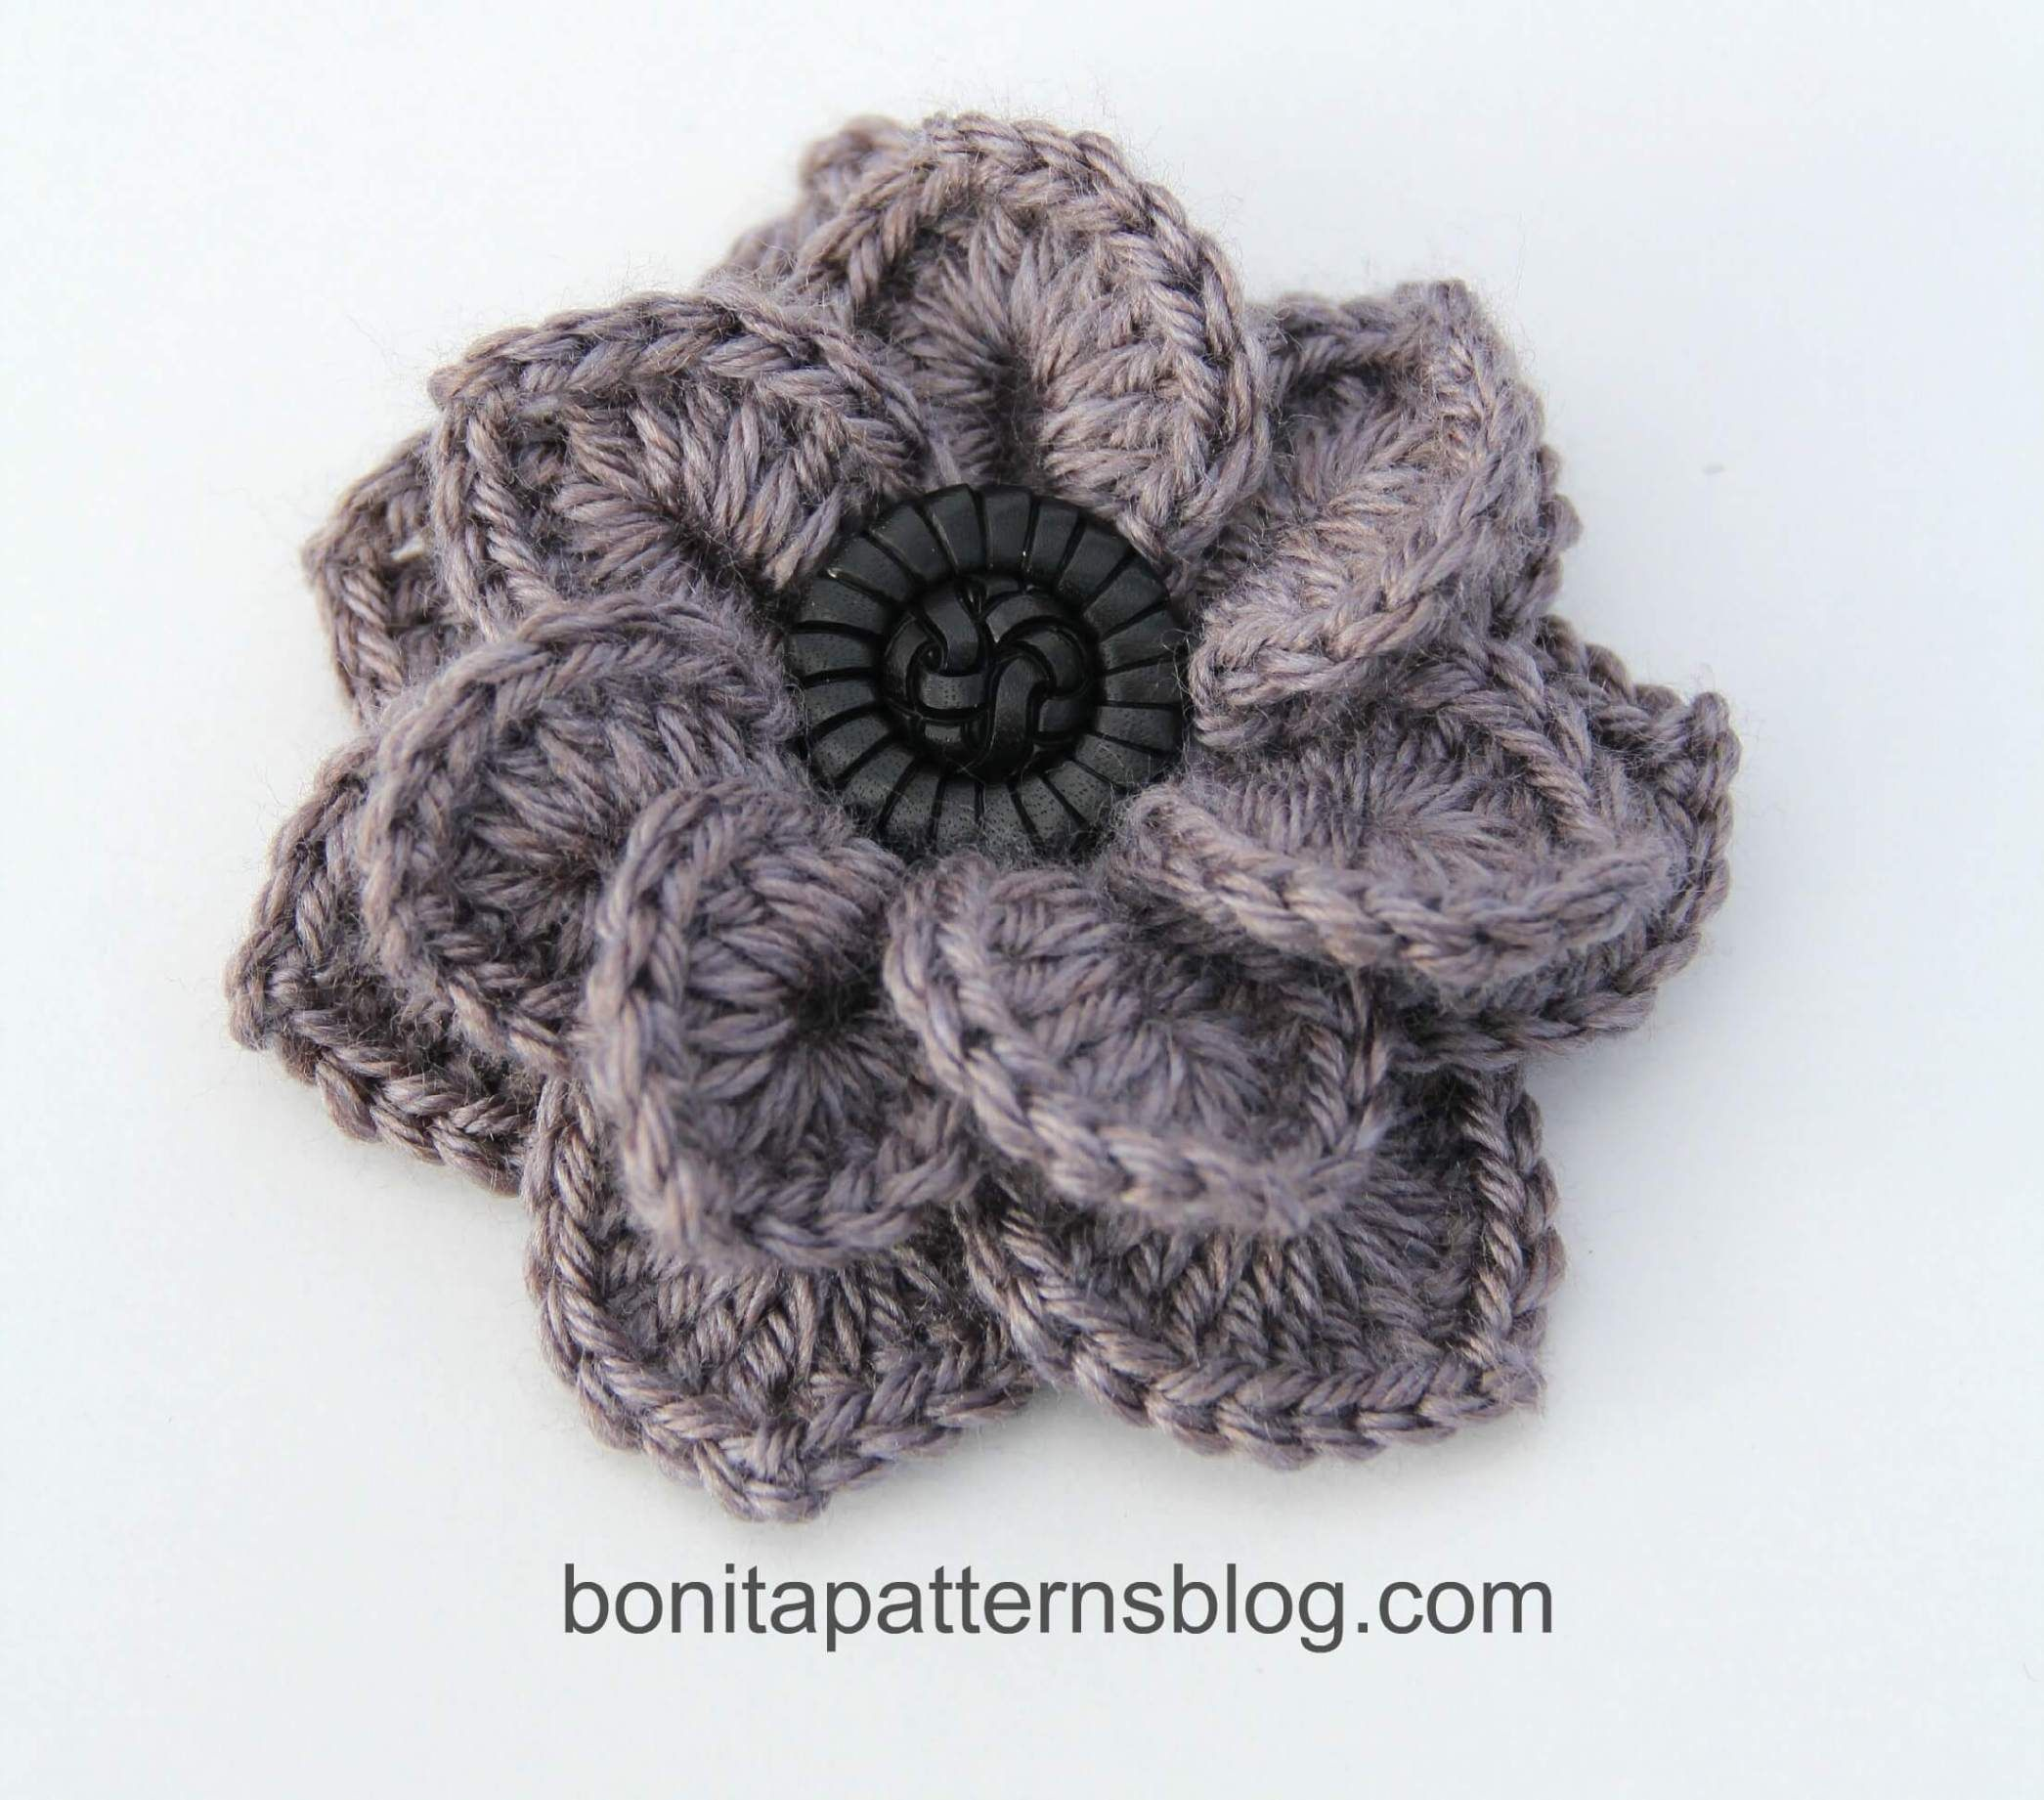 My Top 10 Favorite Free Patterns For Crochet Flowers Appliques